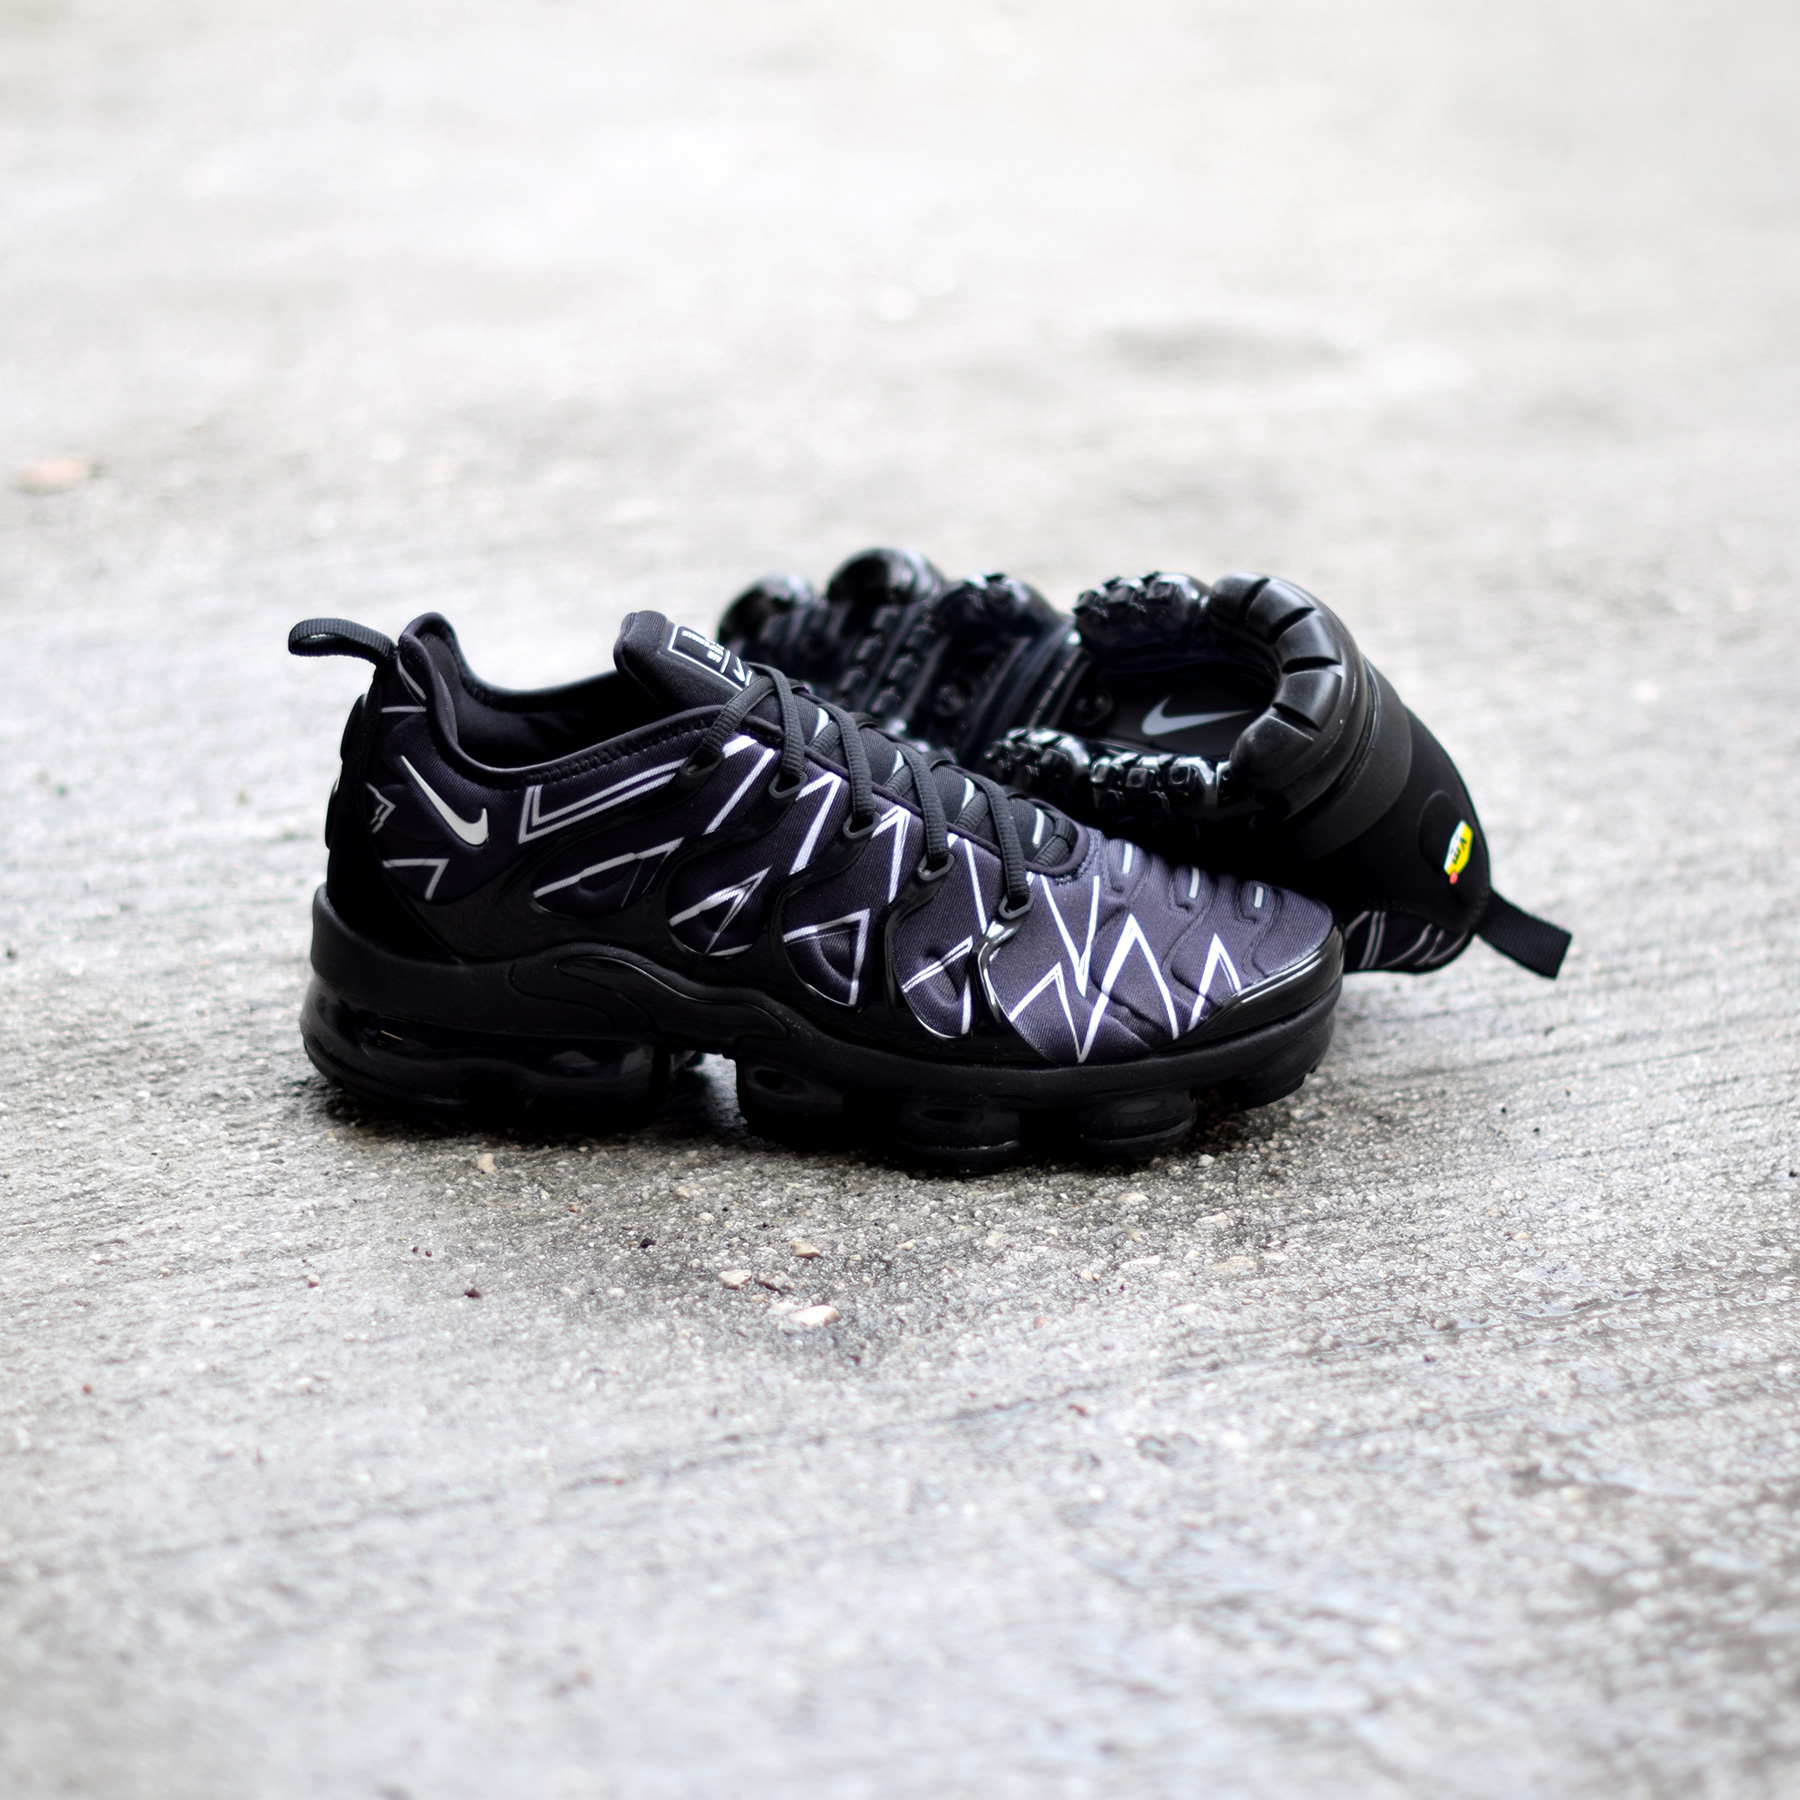 ea8d92ce6f3 NEW Nike Air VaporMax Plus HL Zig-Zag Black AJ6312-001 US 8.5 EU 42 ...